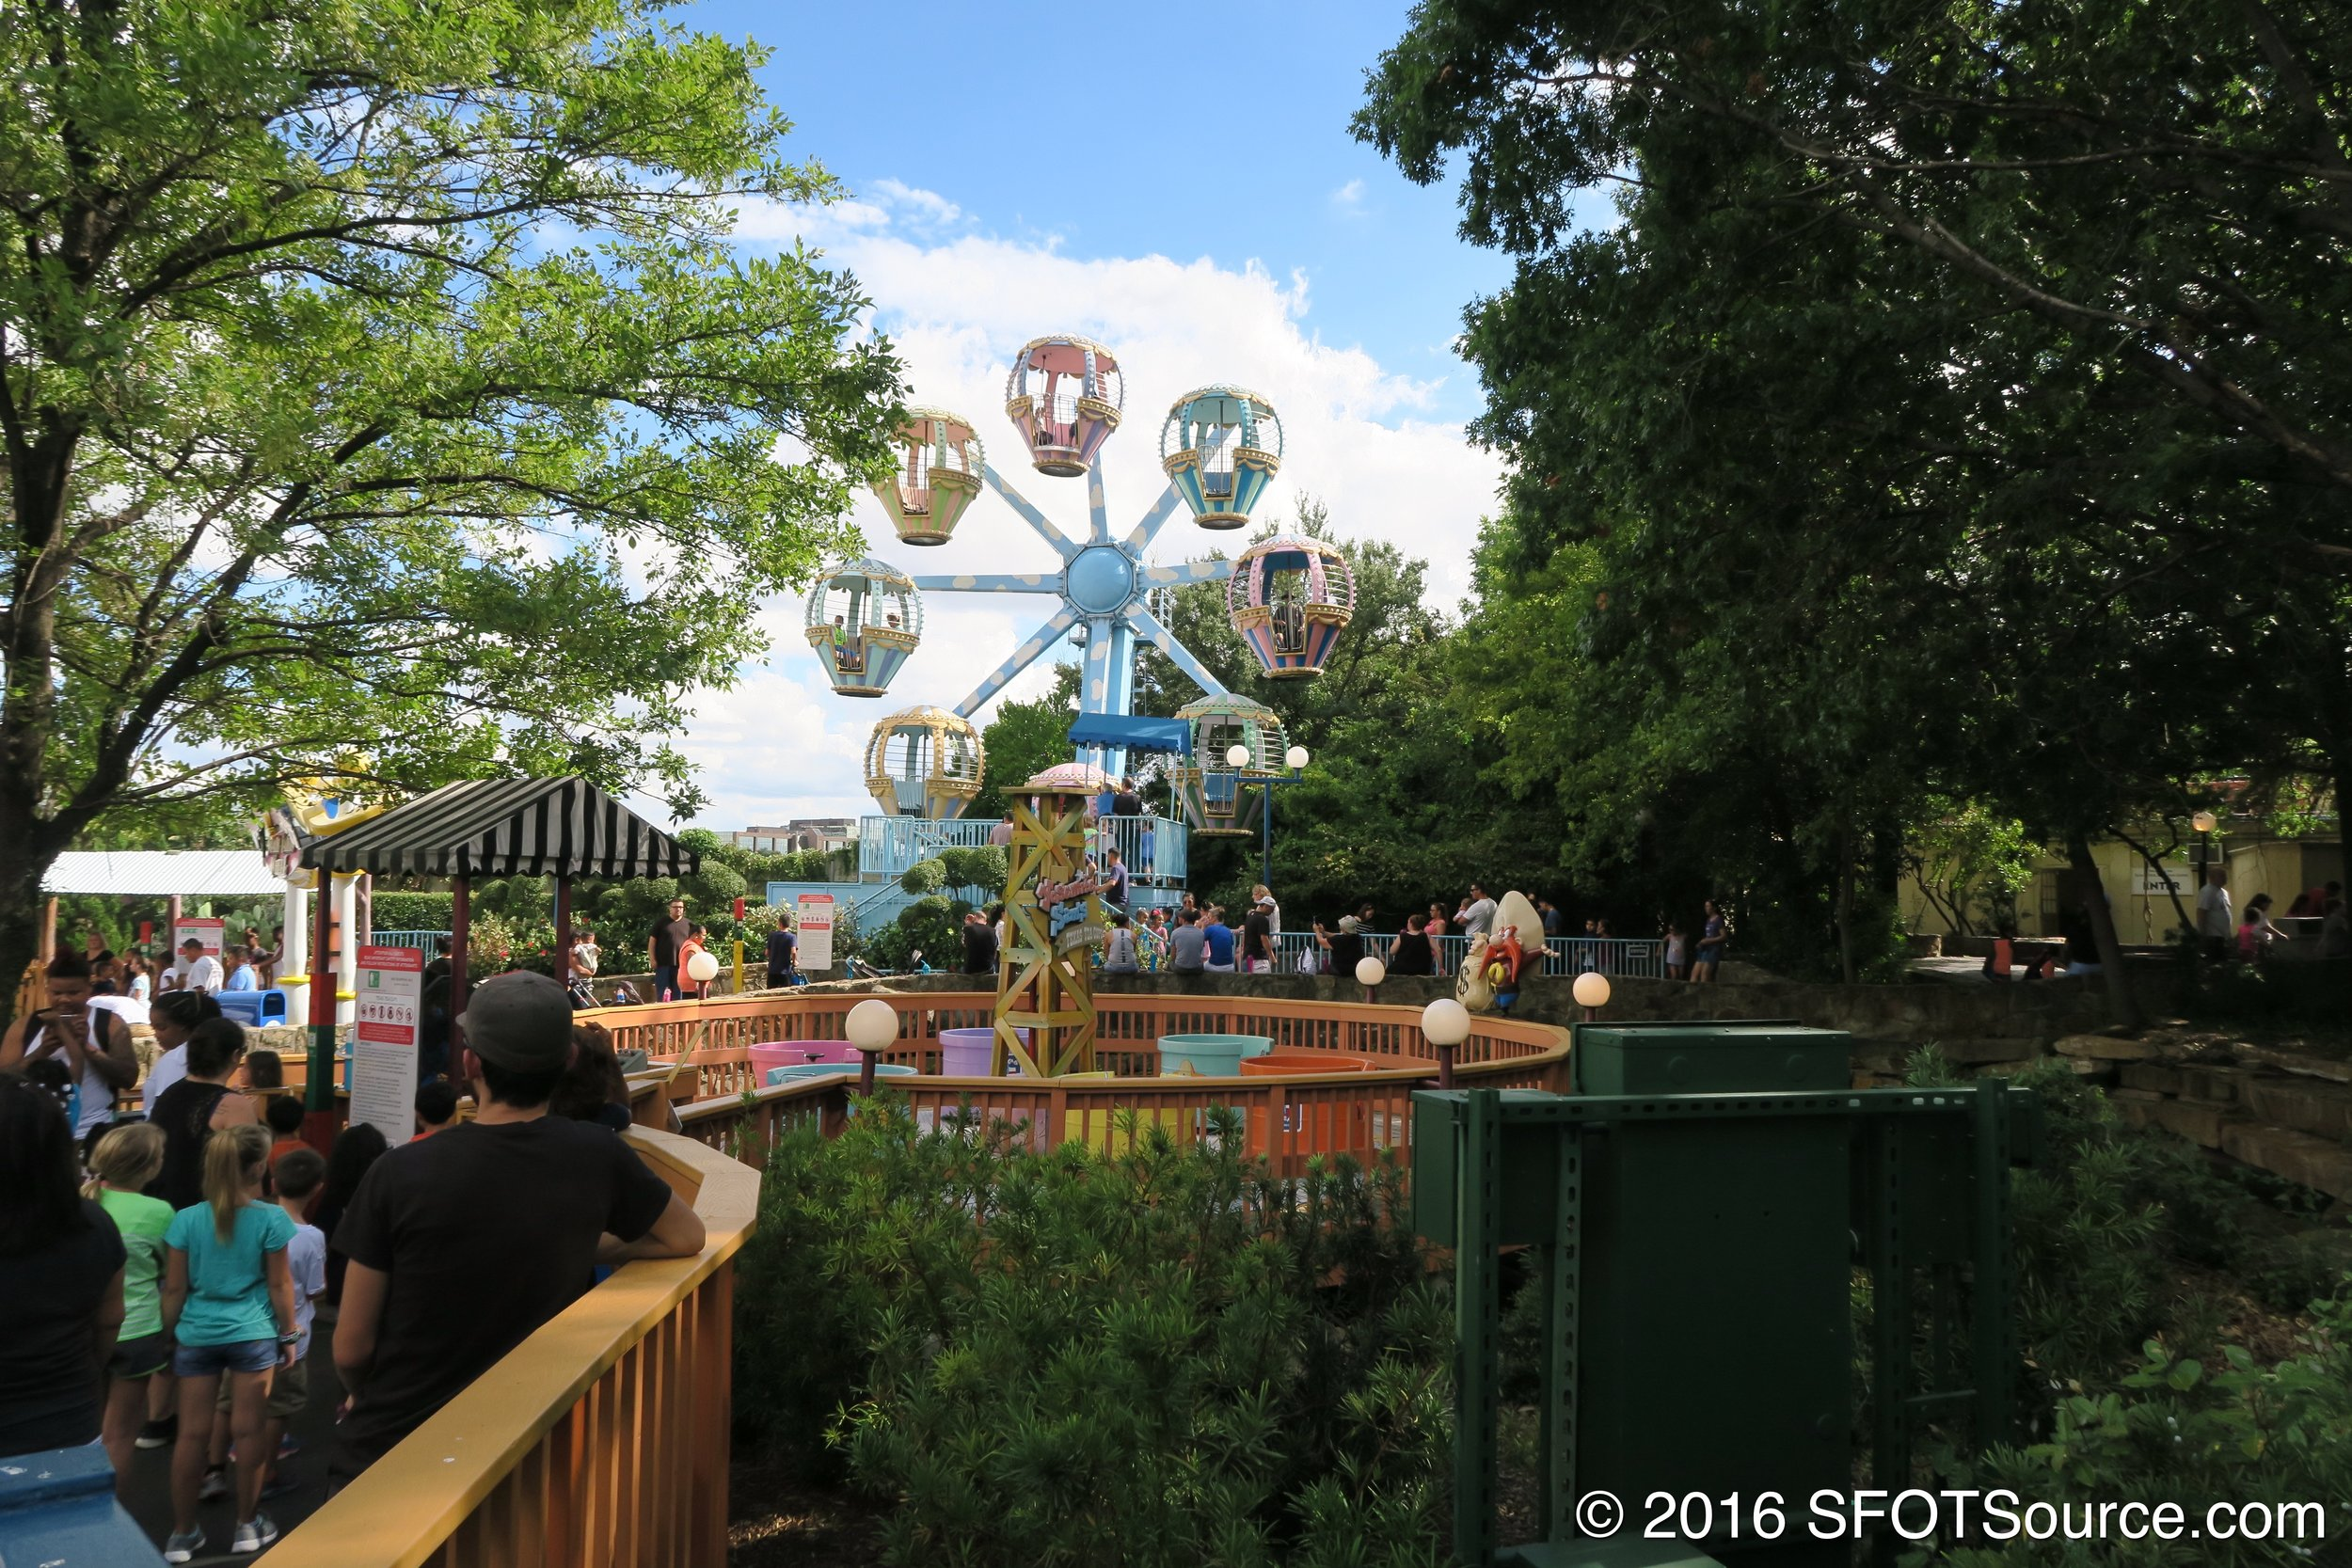 An overall look at the attraction.